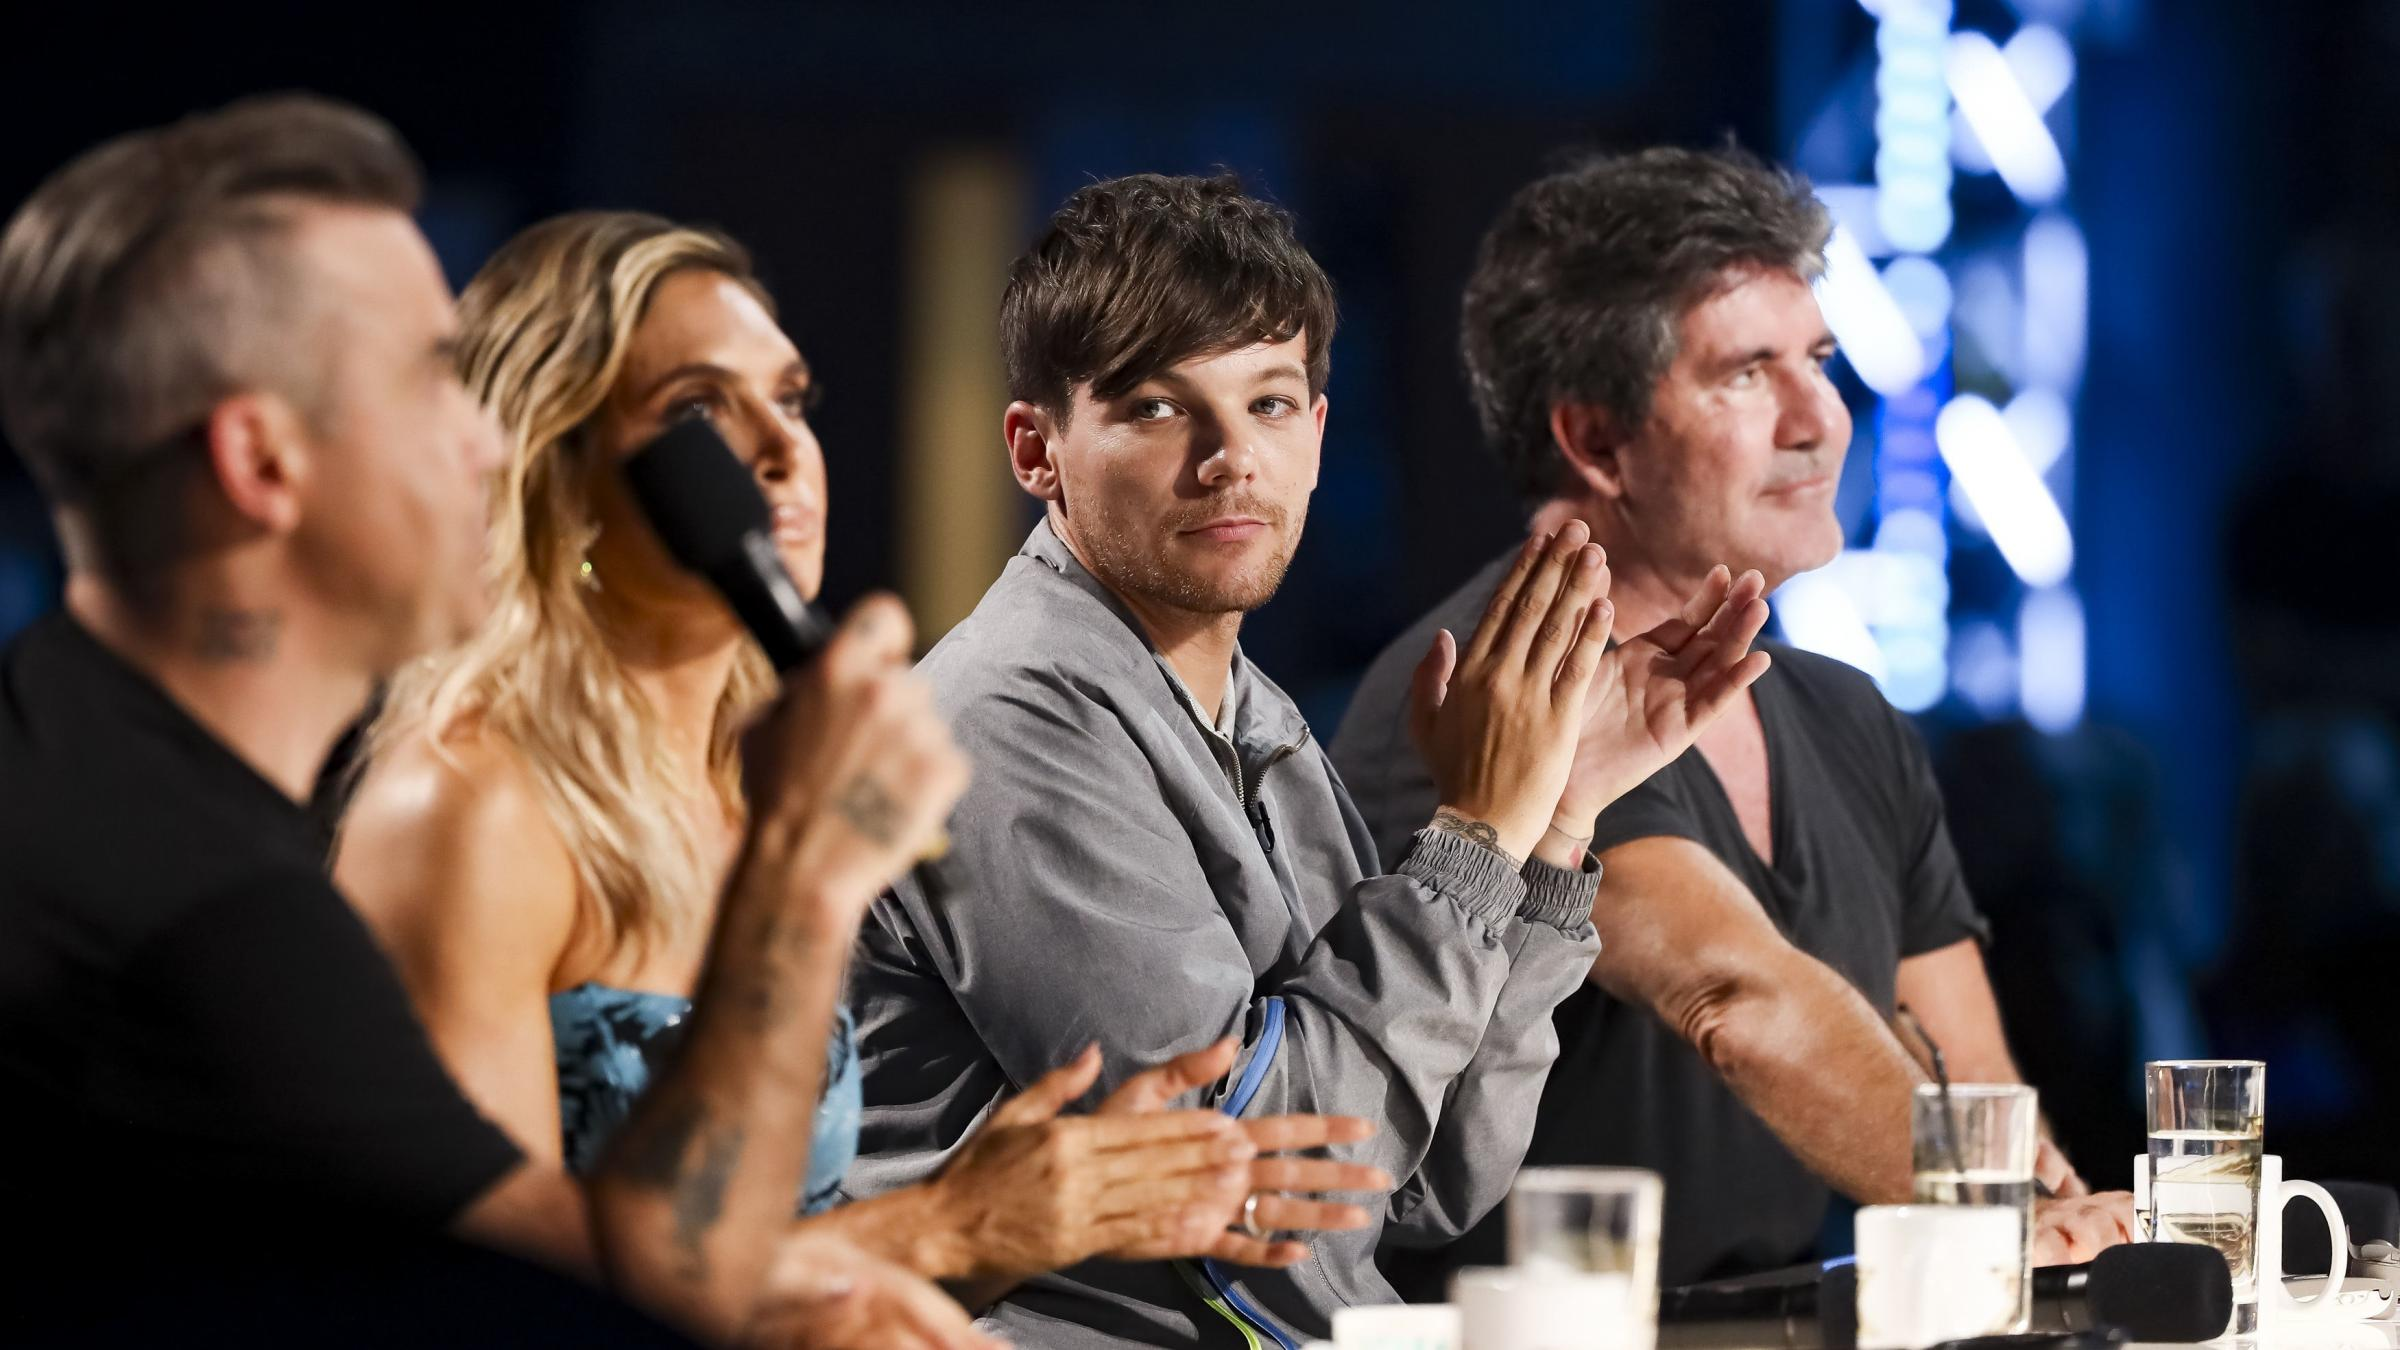 Last three X Factor contestants go head-to-head as series final begins